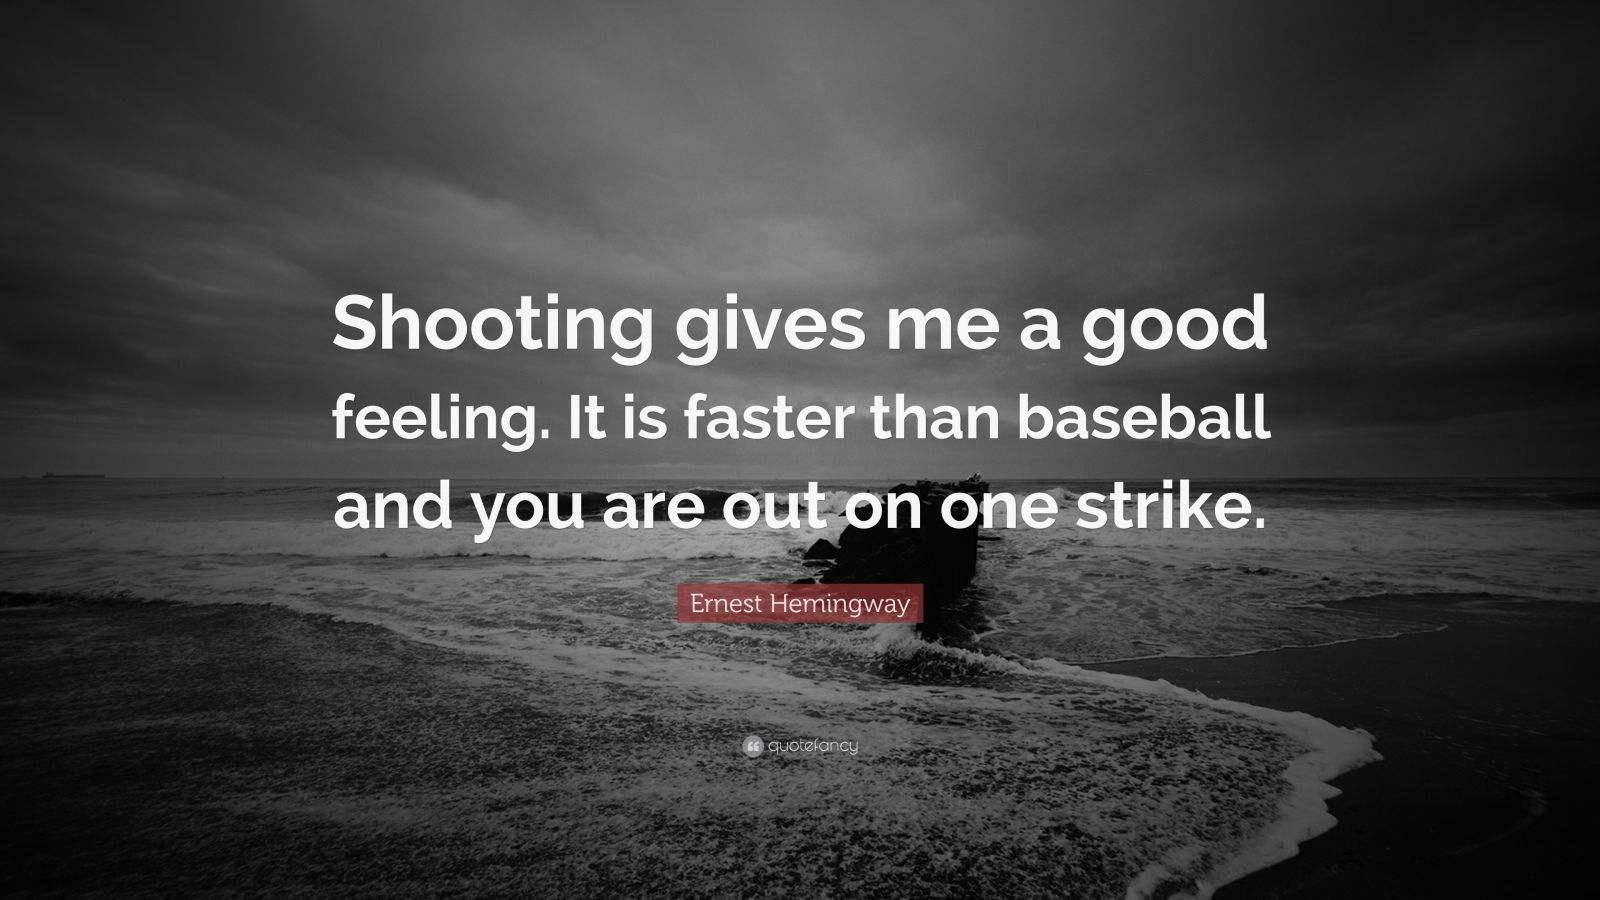 """Ernest Hemingway Quote: """"Shooting gives me a good feeling. It is faster than baseball and you are out on one strike."""""""